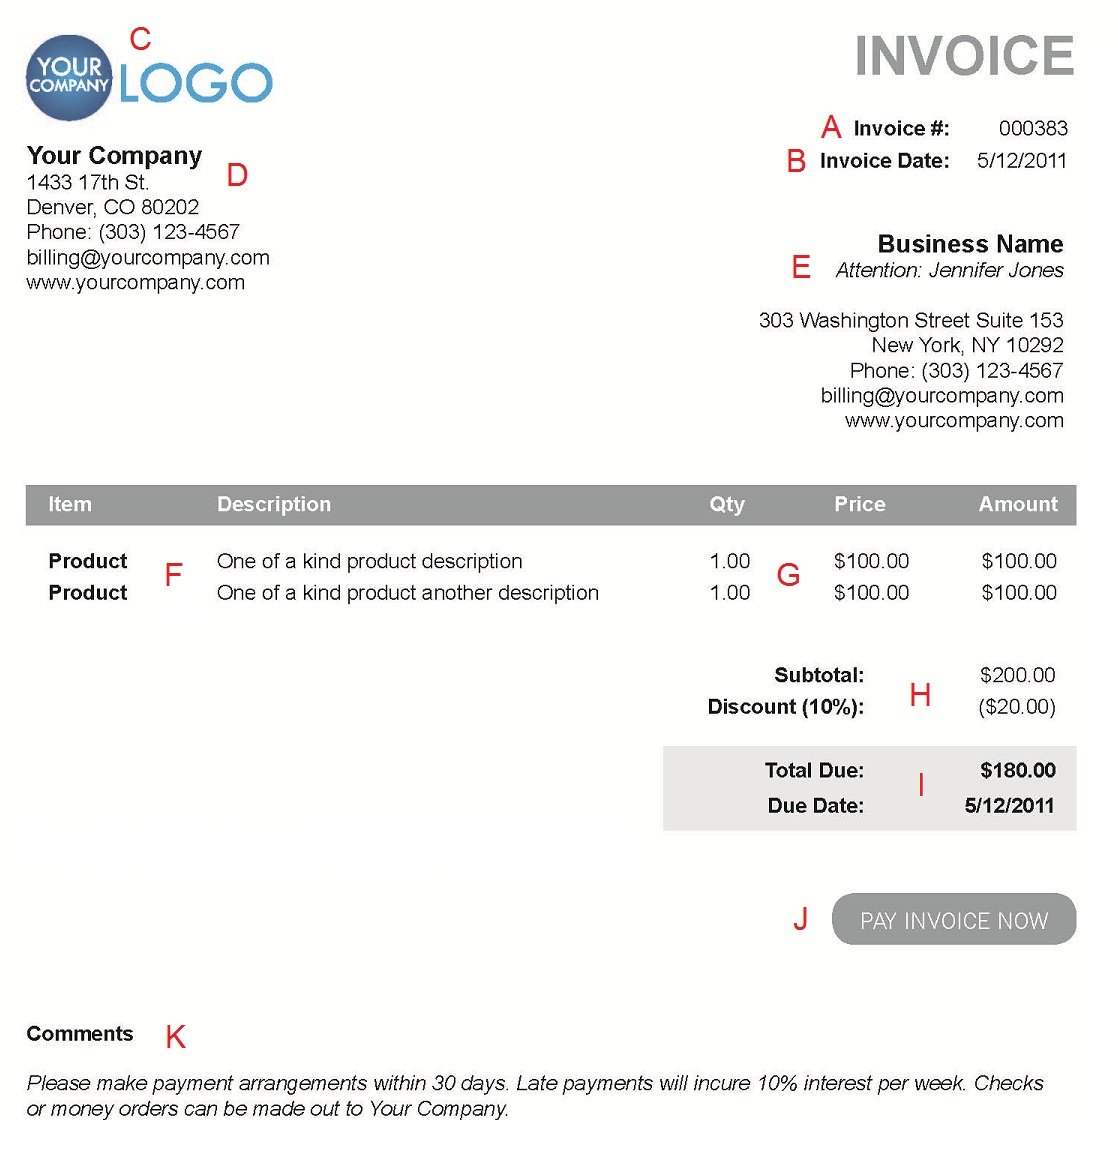 Aaaaeroincus  Outstanding The  Different Sections Of An Electronic Payment Invoice With Marvelous A  With Cute Microsoft Word Invoice Also New Invoice In Addition Fillable Commercial Invoice And Invoice Cover Letter As Well As Invoice Maker Software Additionally Paypal Recurring Invoice From Paysimplecom With Aaaaeroincus  Marvelous The  Different Sections Of An Electronic Payment Invoice With Cute A  And Outstanding Microsoft Word Invoice Also New Invoice In Addition Fillable Commercial Invoice From Paysimplecom